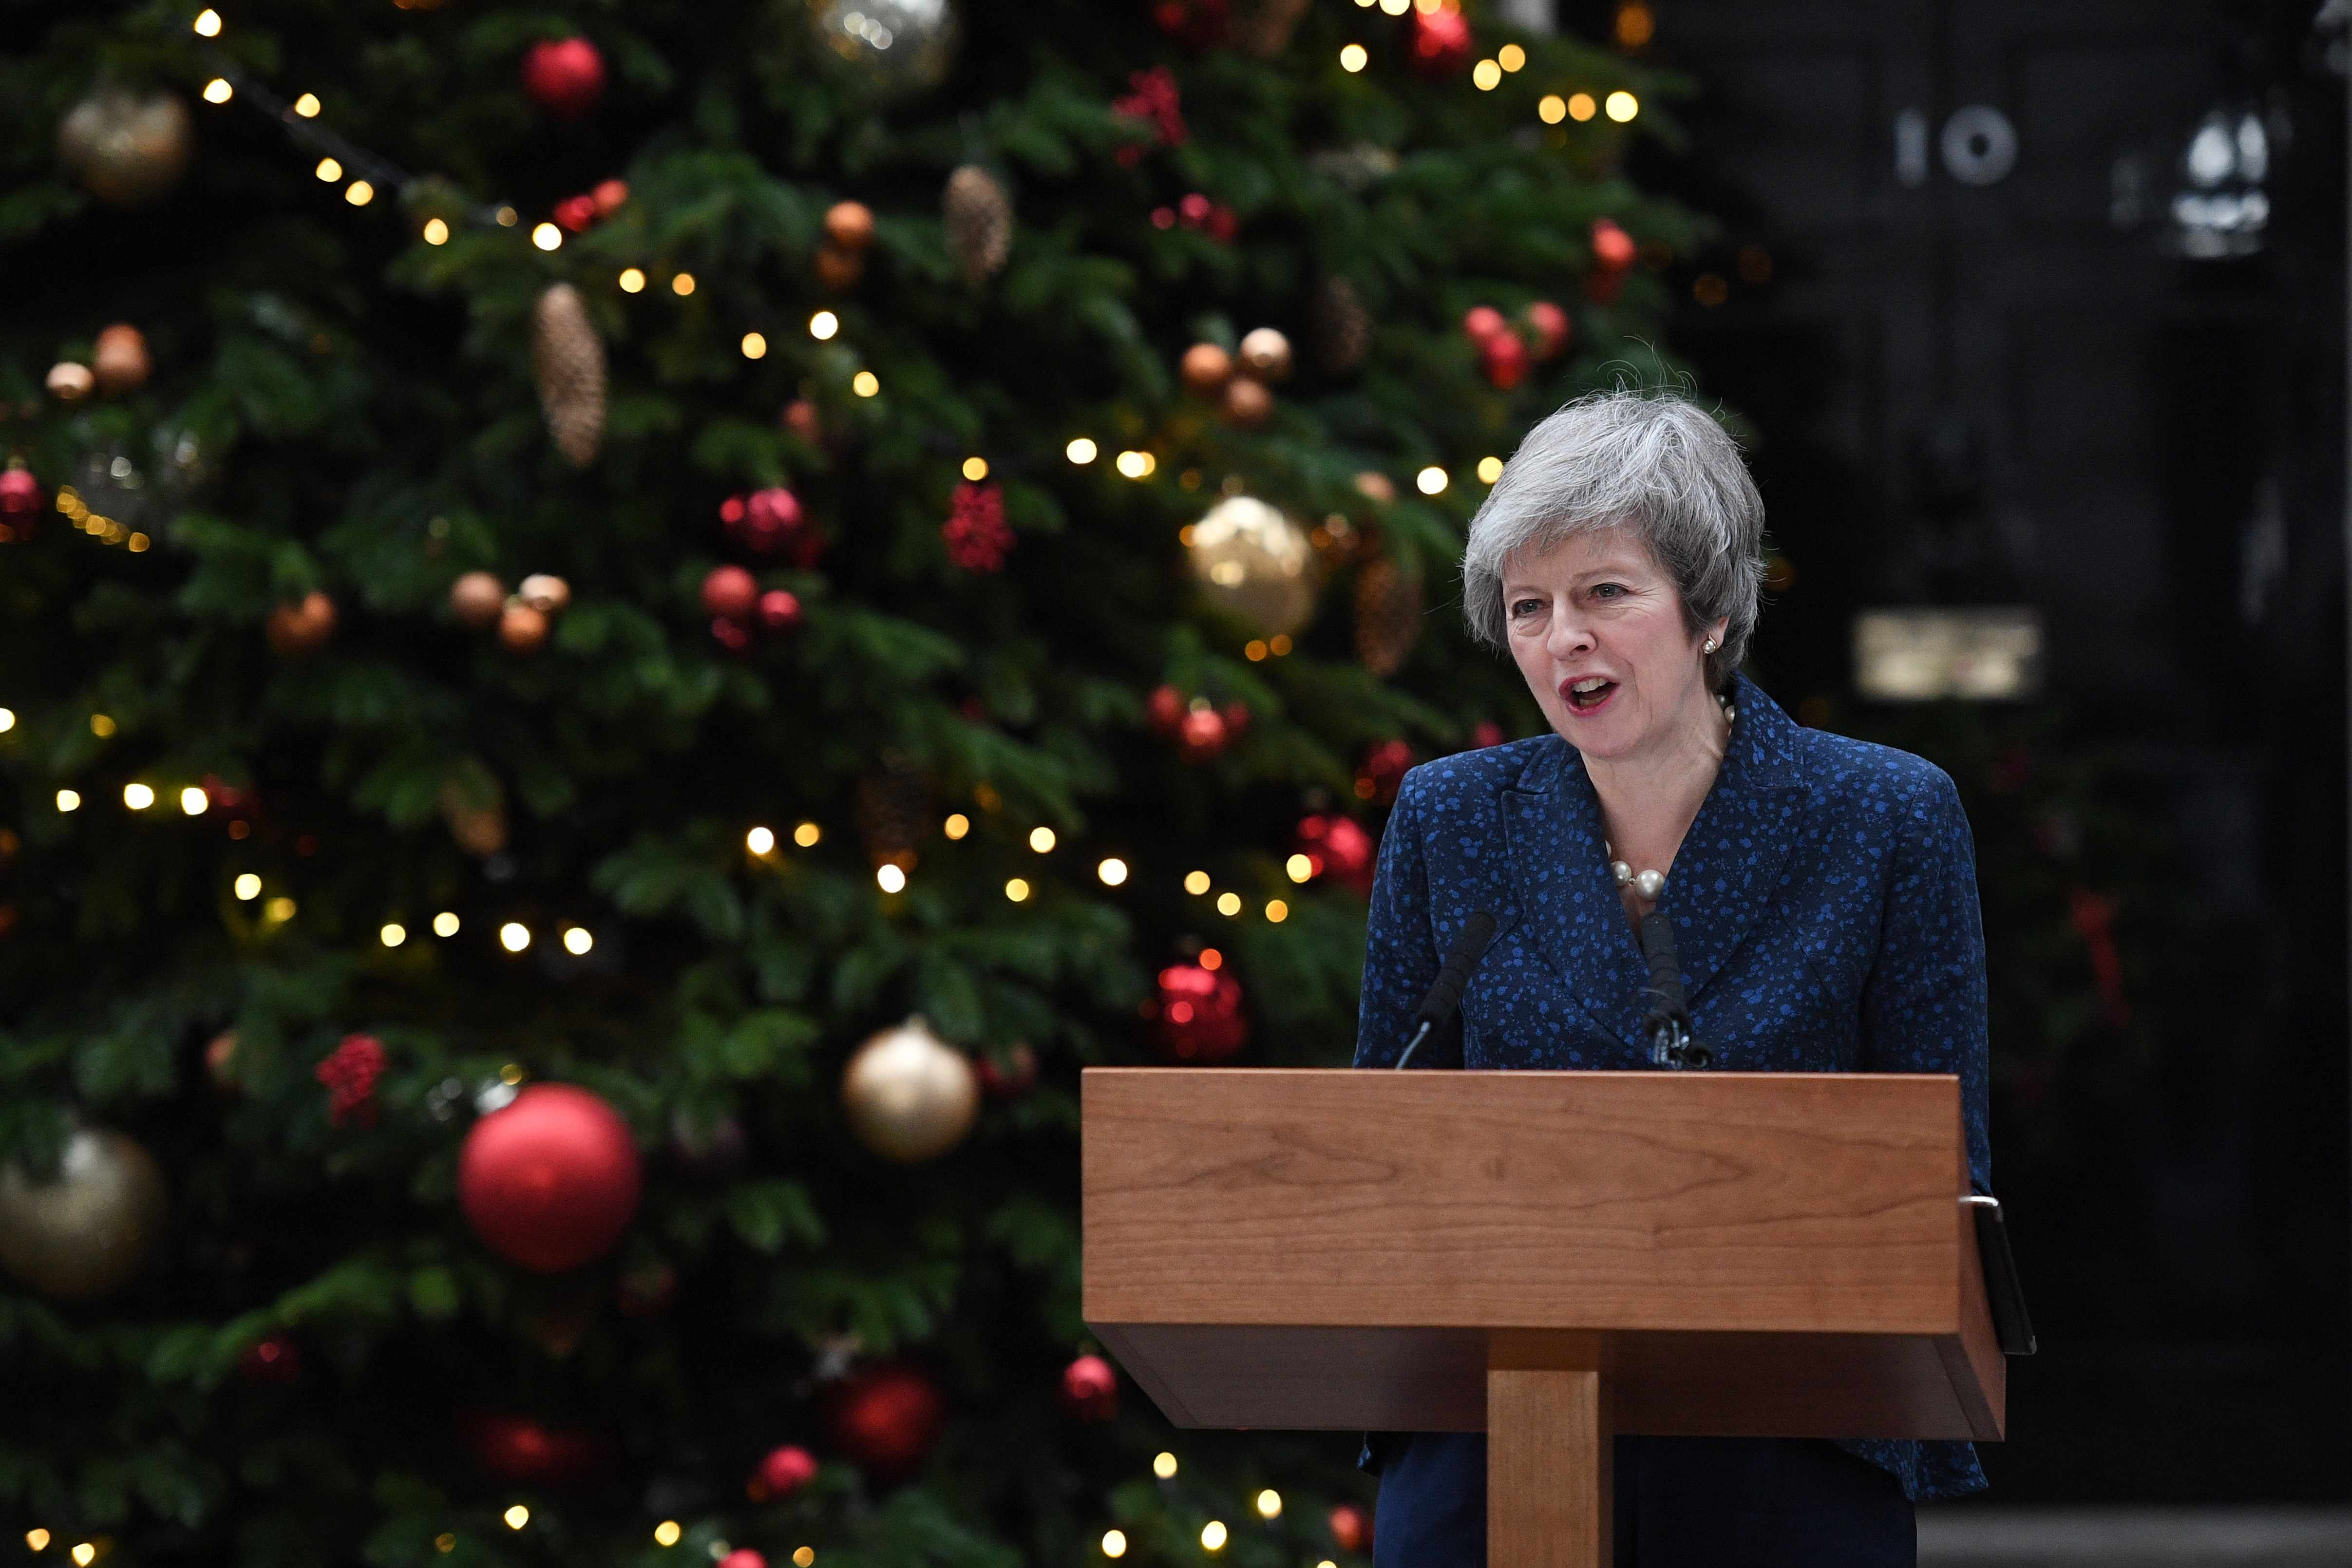 Prime Minister Theresa May makes a statement in Downing Street after it was announced that she will face a vote of no confidence (Getty)